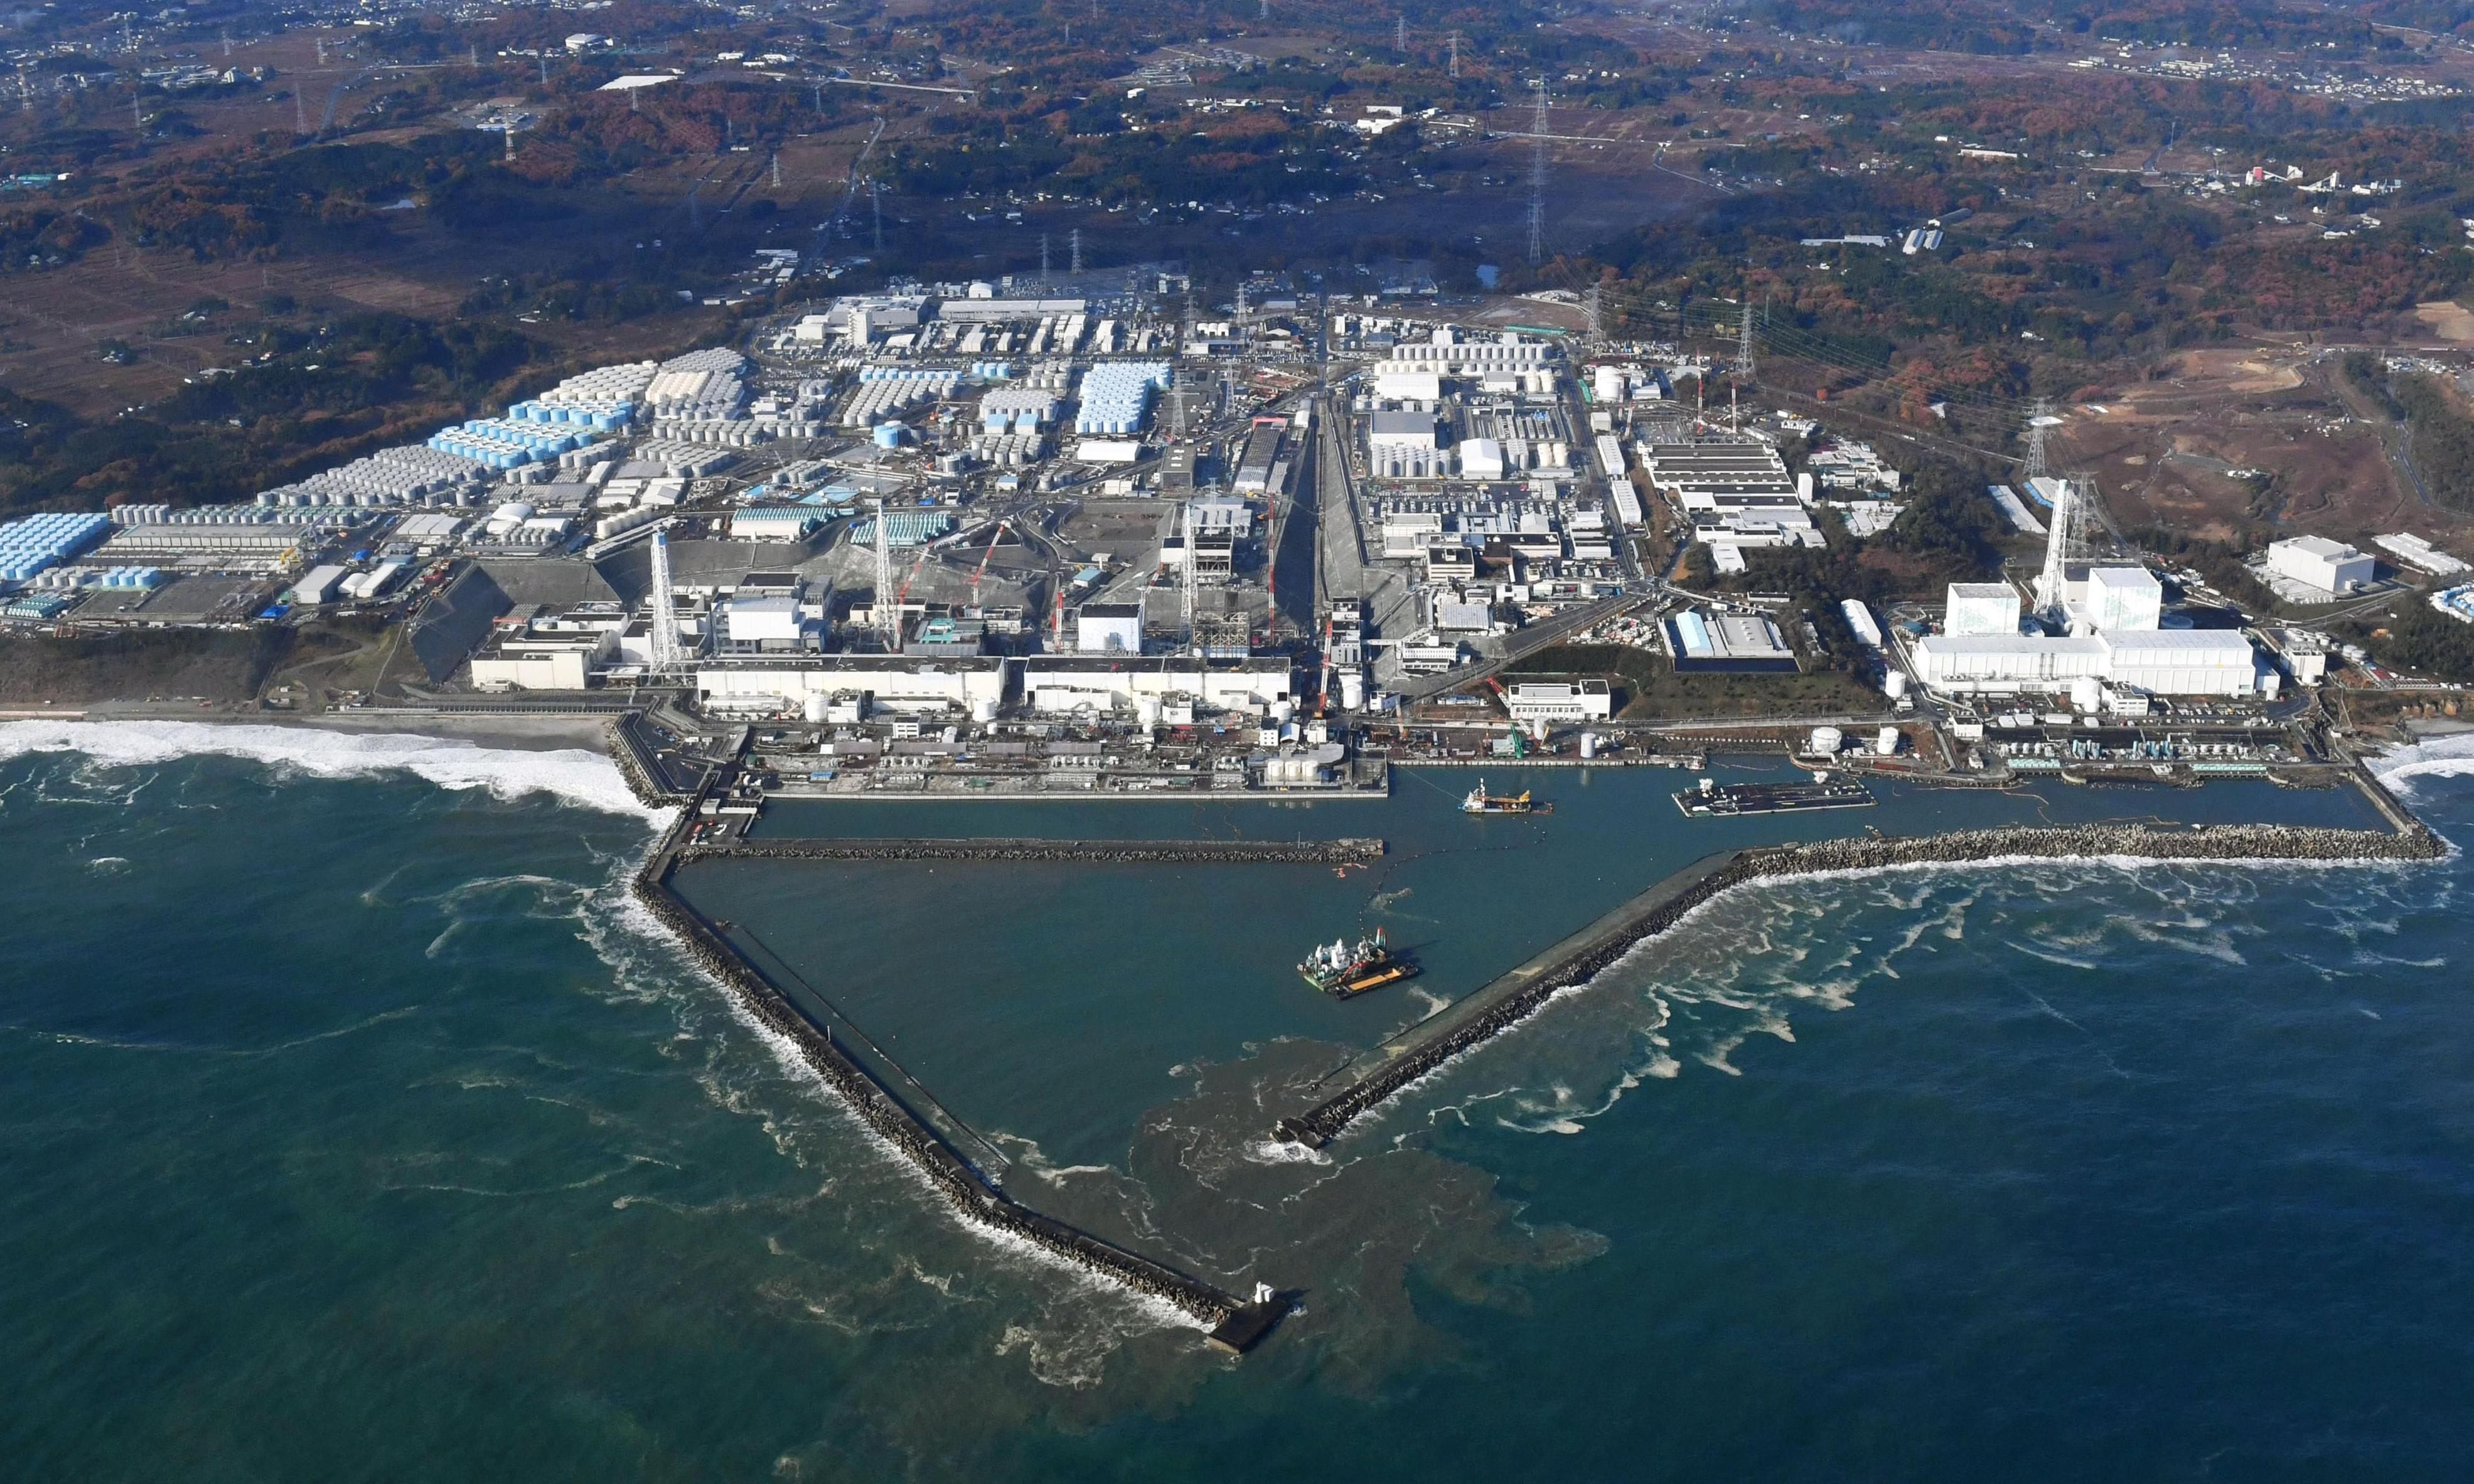 Fukushima disaster: first residents return to town next to nuclear plant